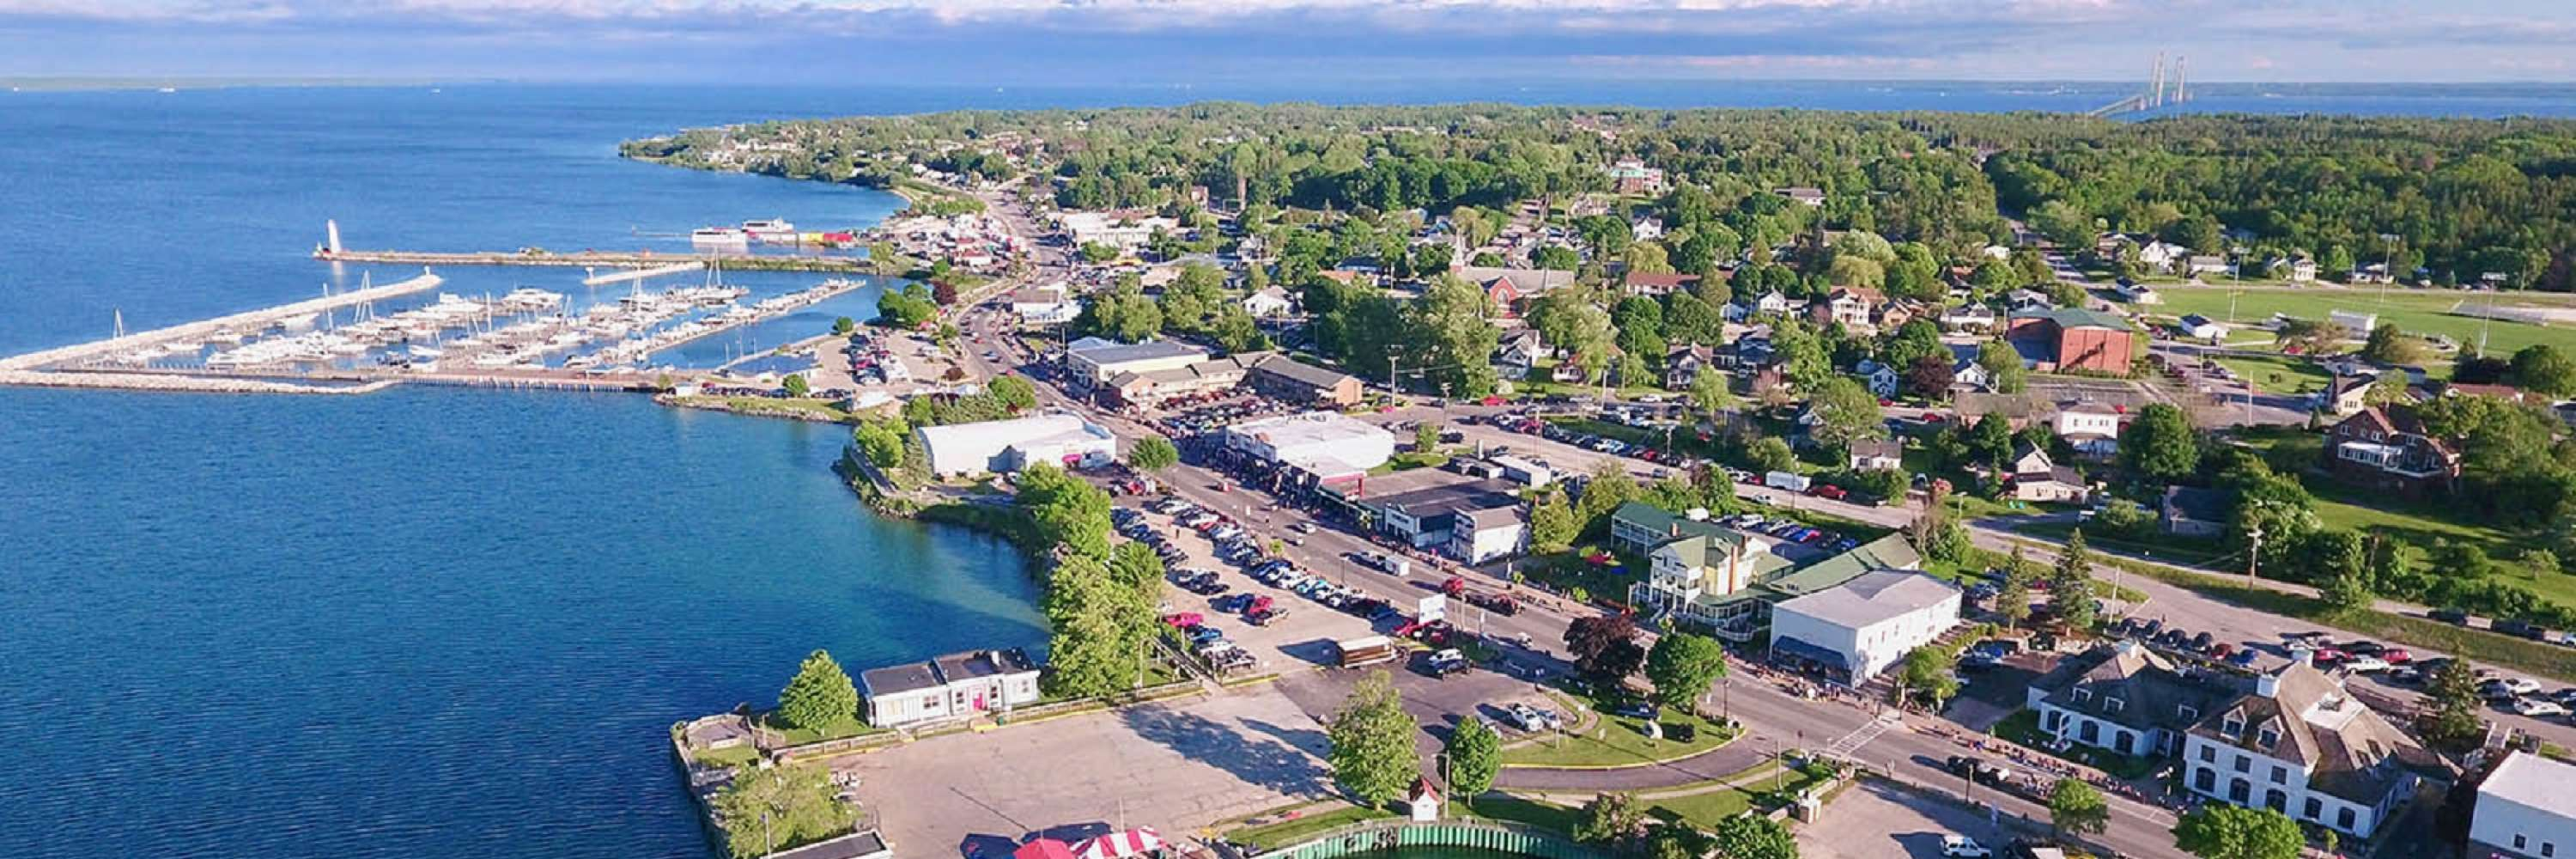 aerial view over st. ignace, ferry in the water loading to go to mackinac island